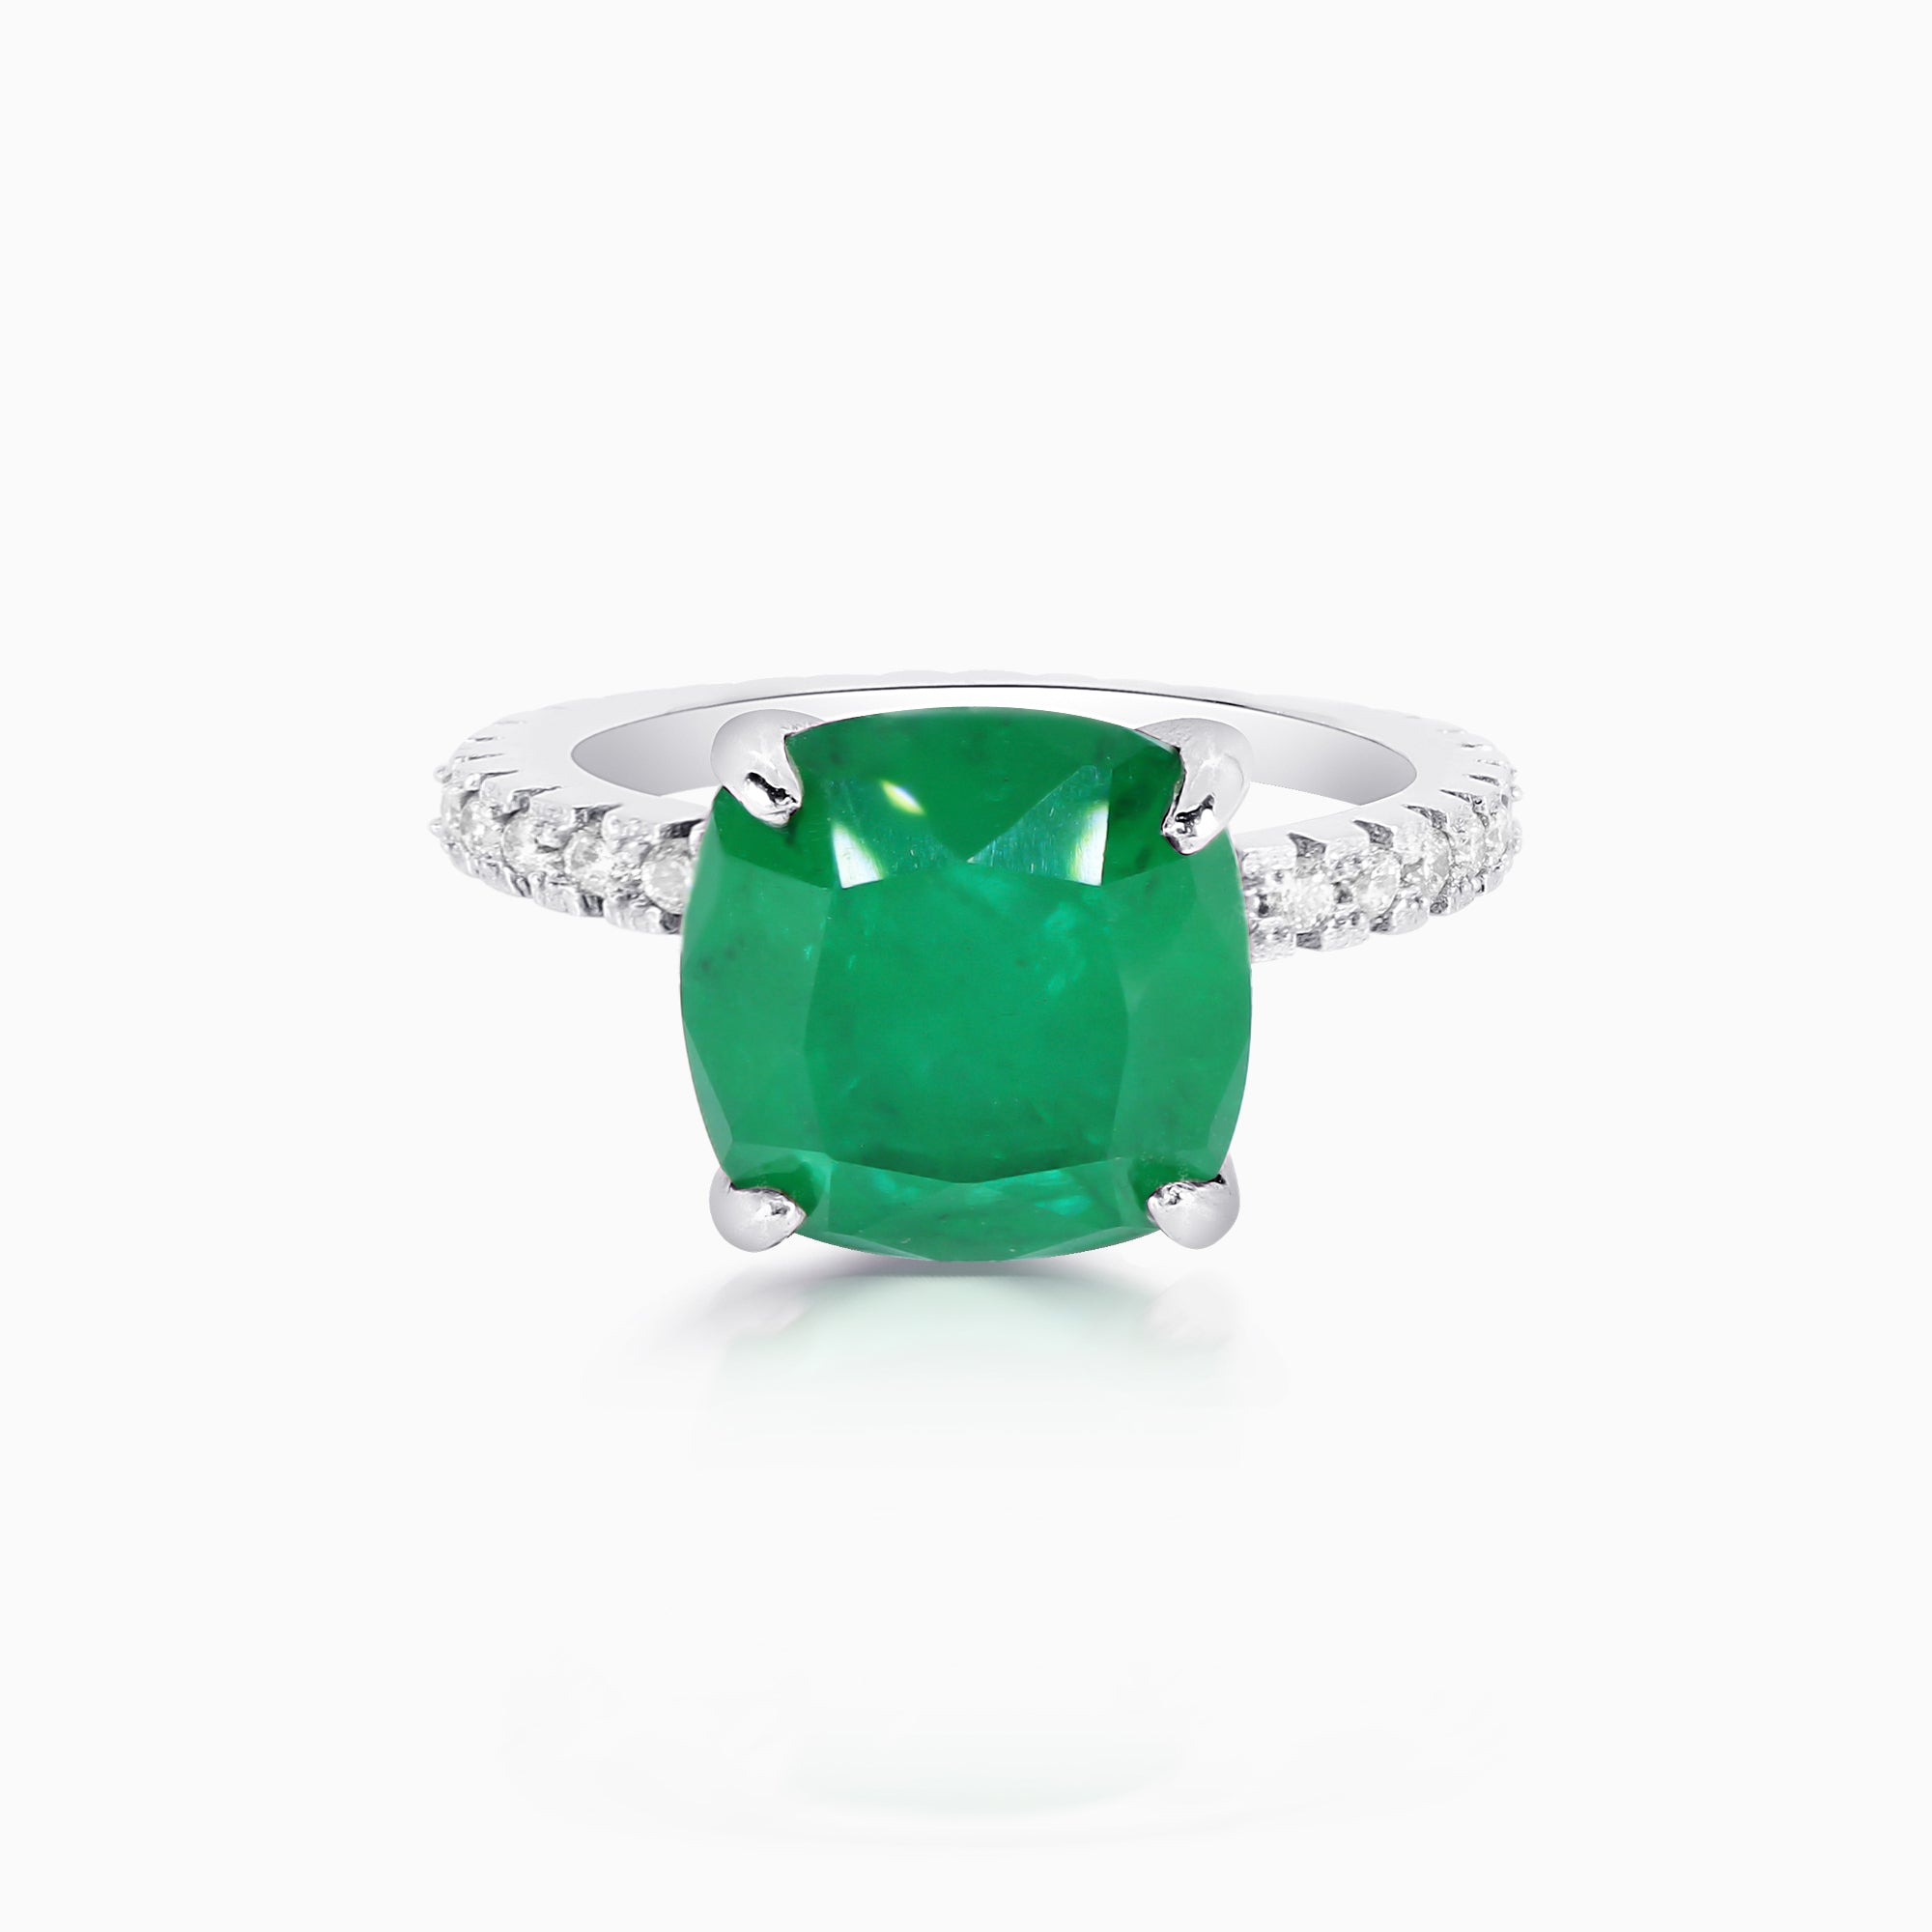 5ct Emerald Cushion Cut Ring